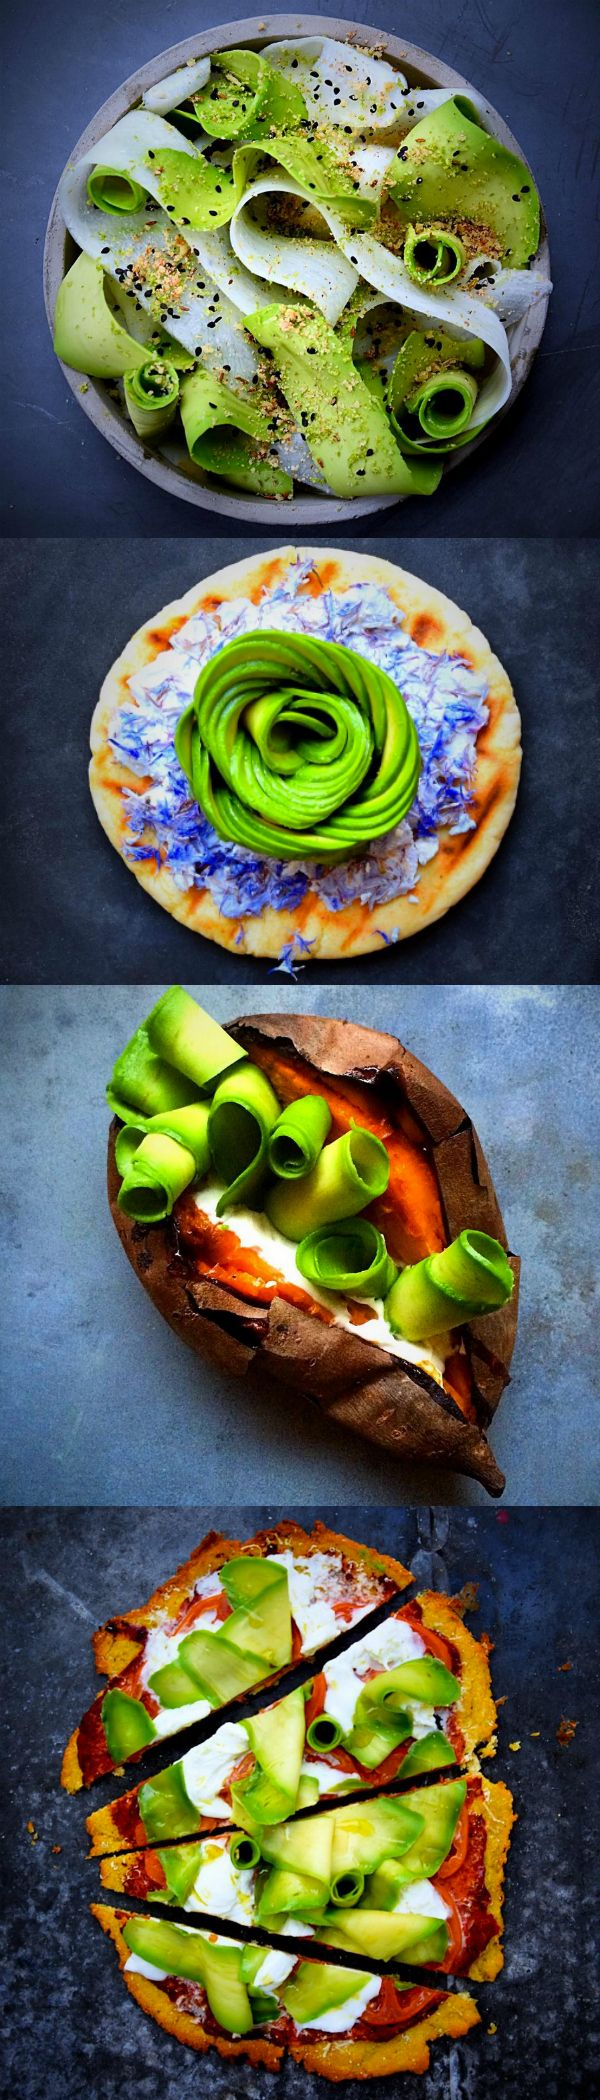 New food trend further solidifies the avocado as one of the world's most versatile and beloved fruits.